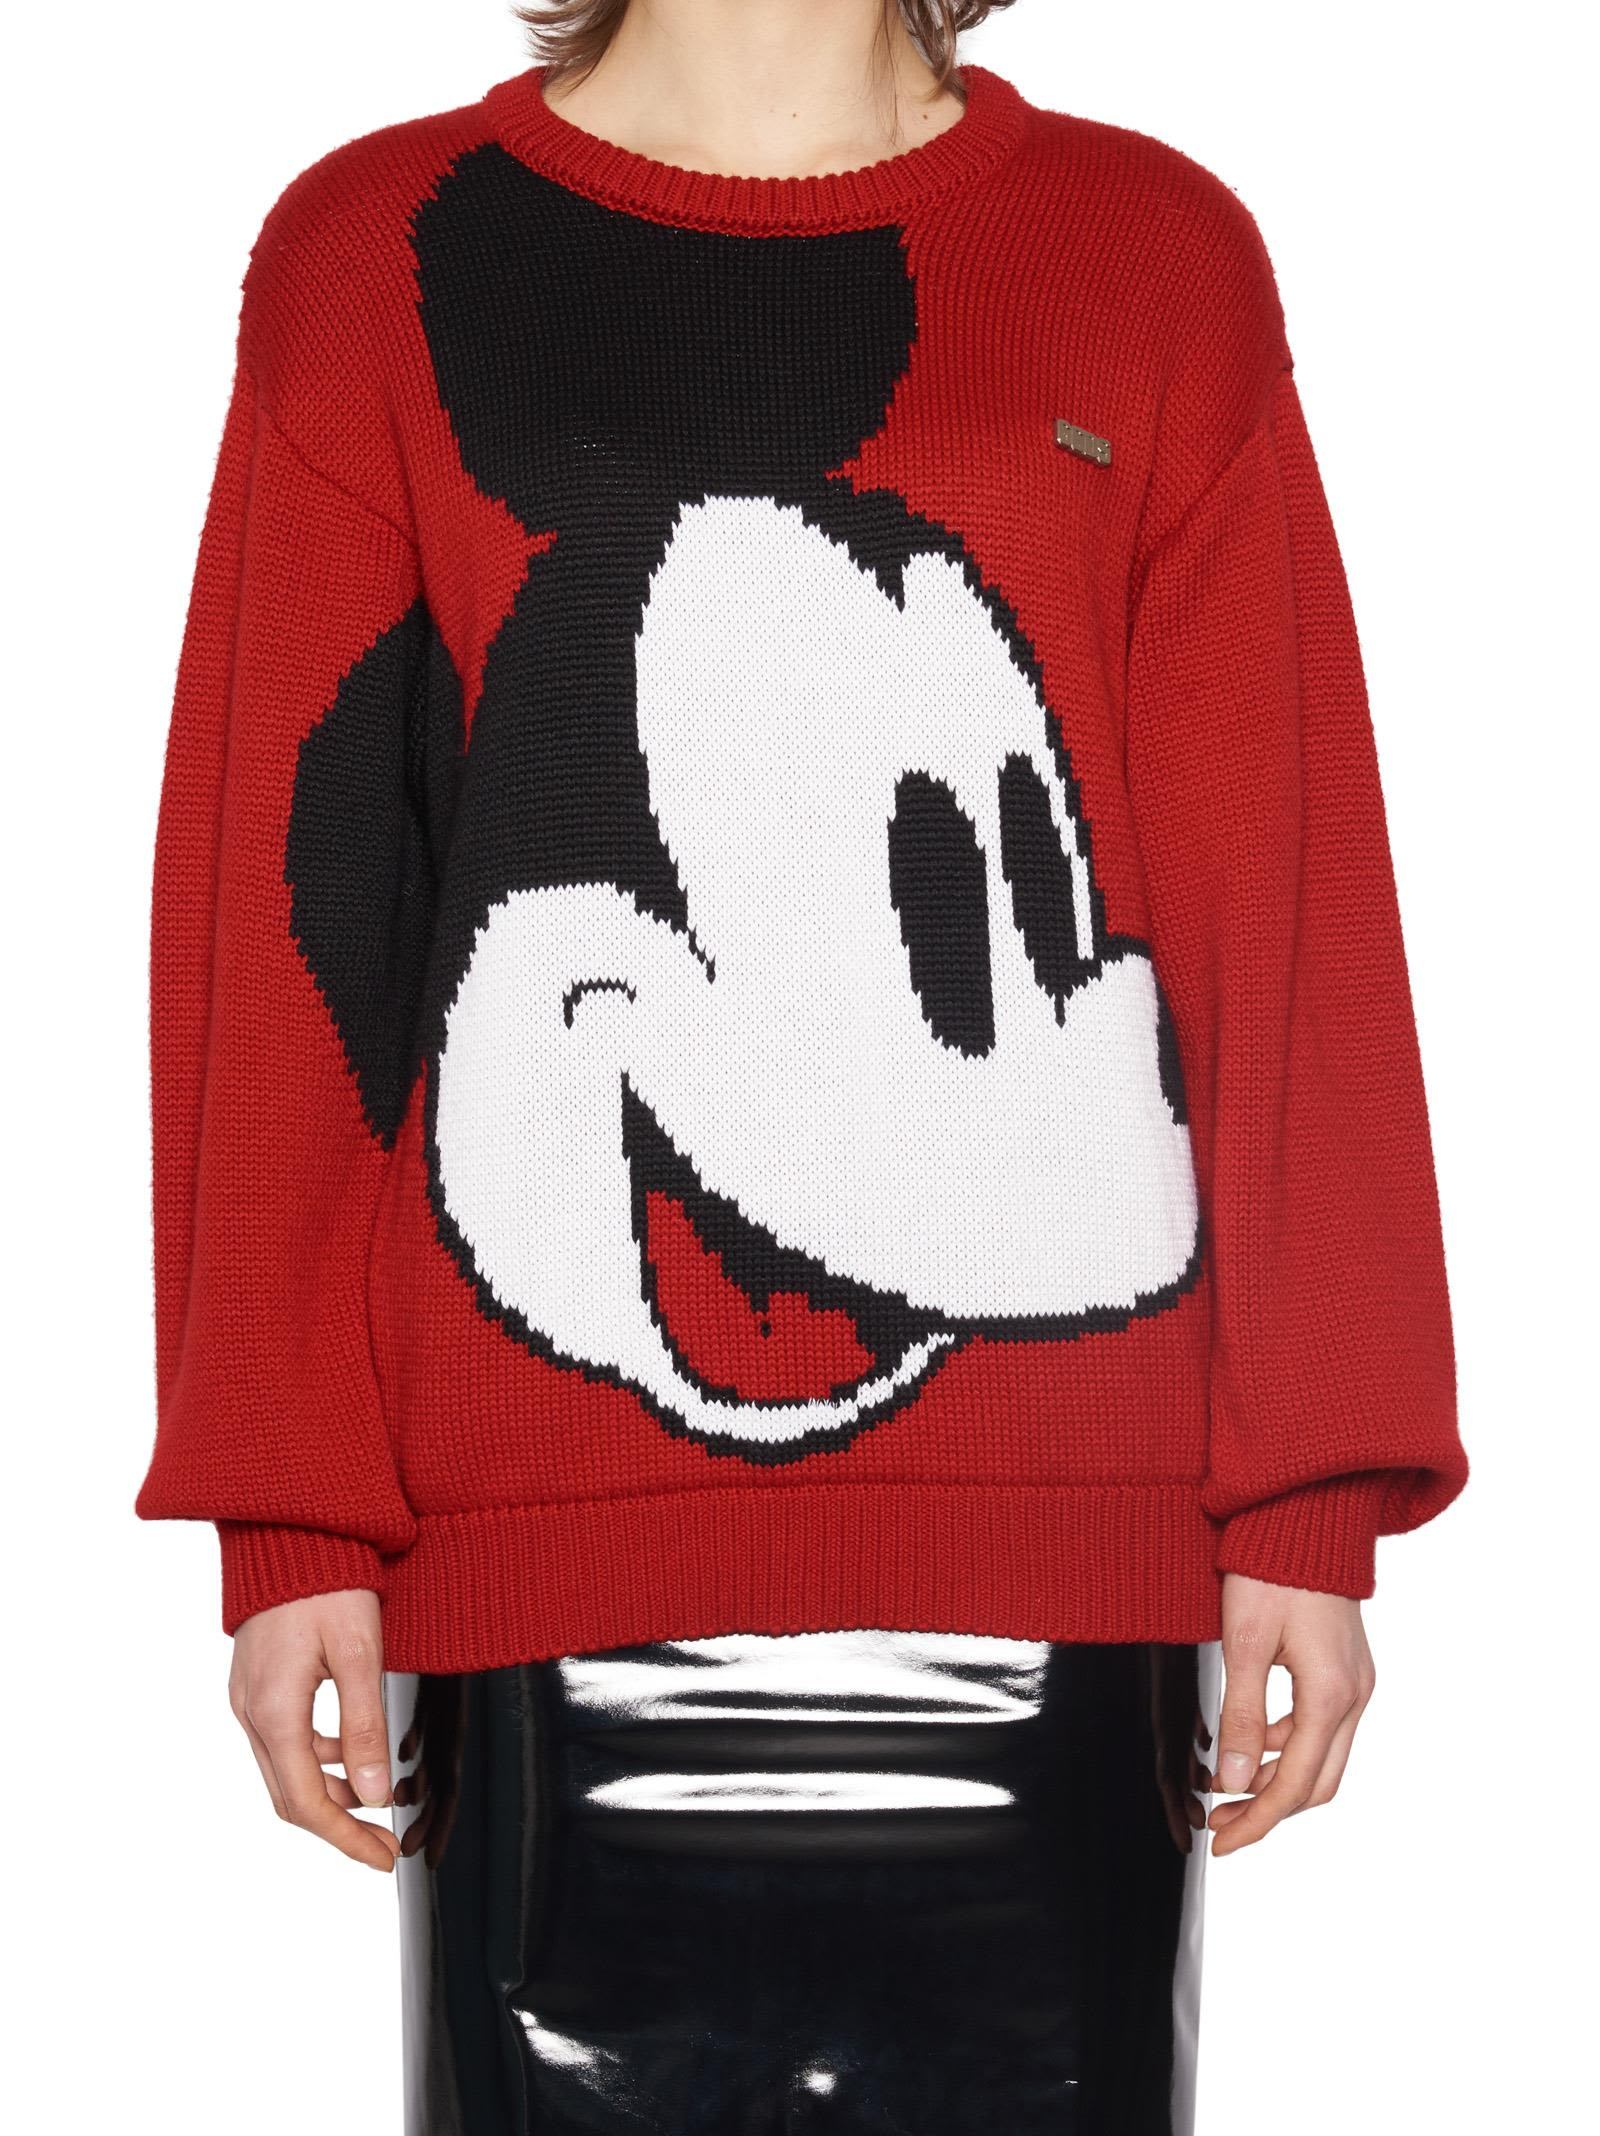 Gcds X Disney Mickey Mouse Knit Sweater in Red